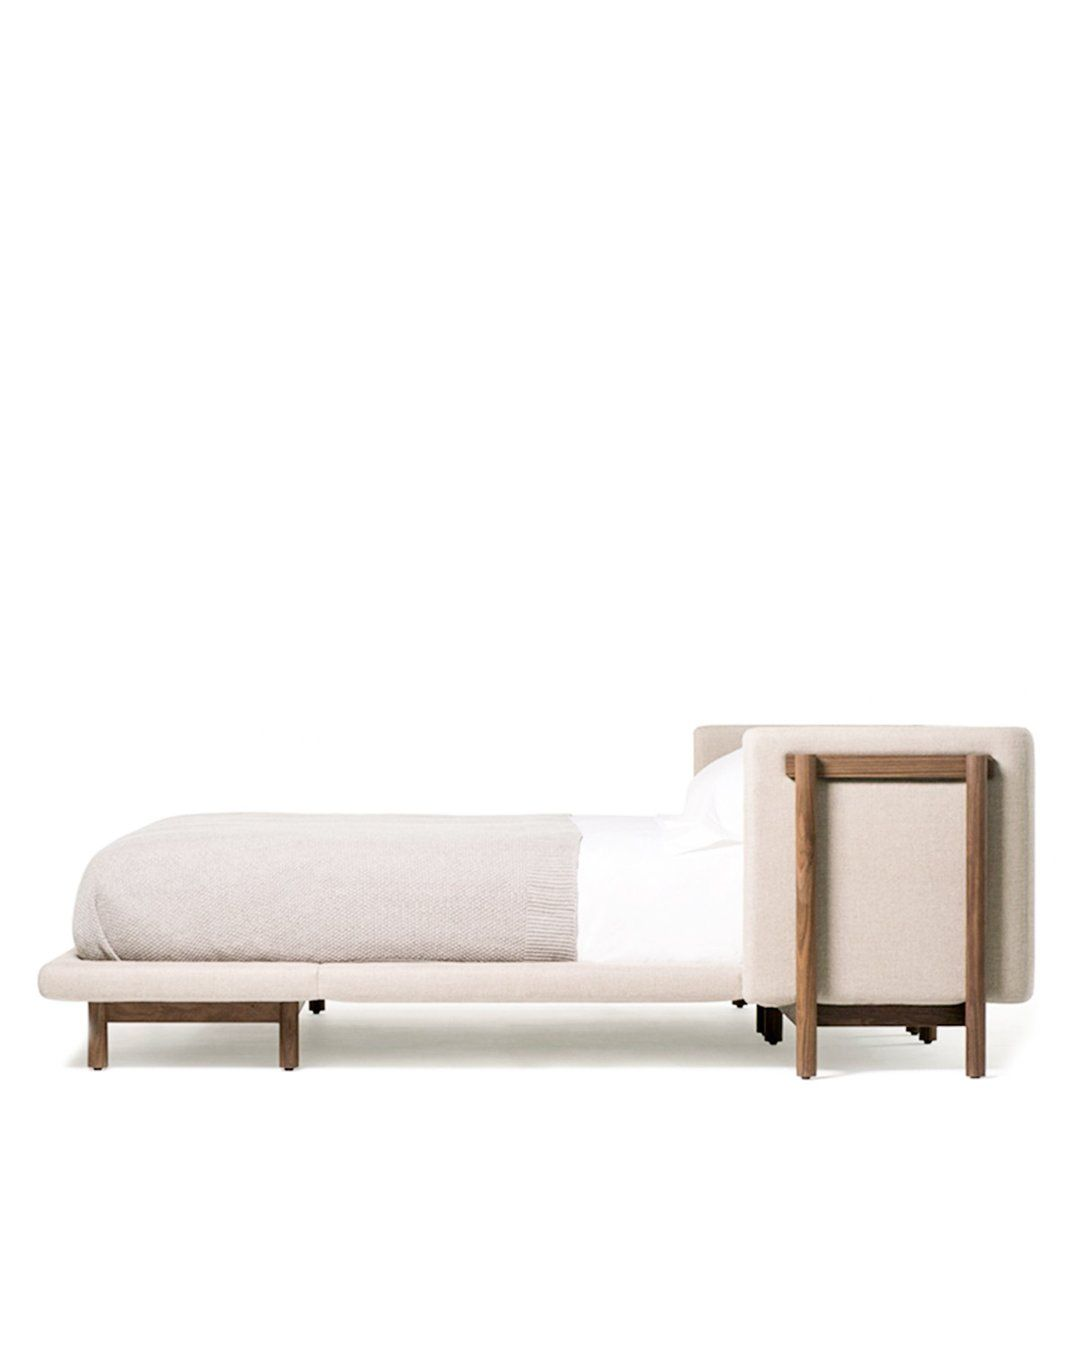 Frame Bed With Arms In 2020 Bed Frame Bed Bed Base